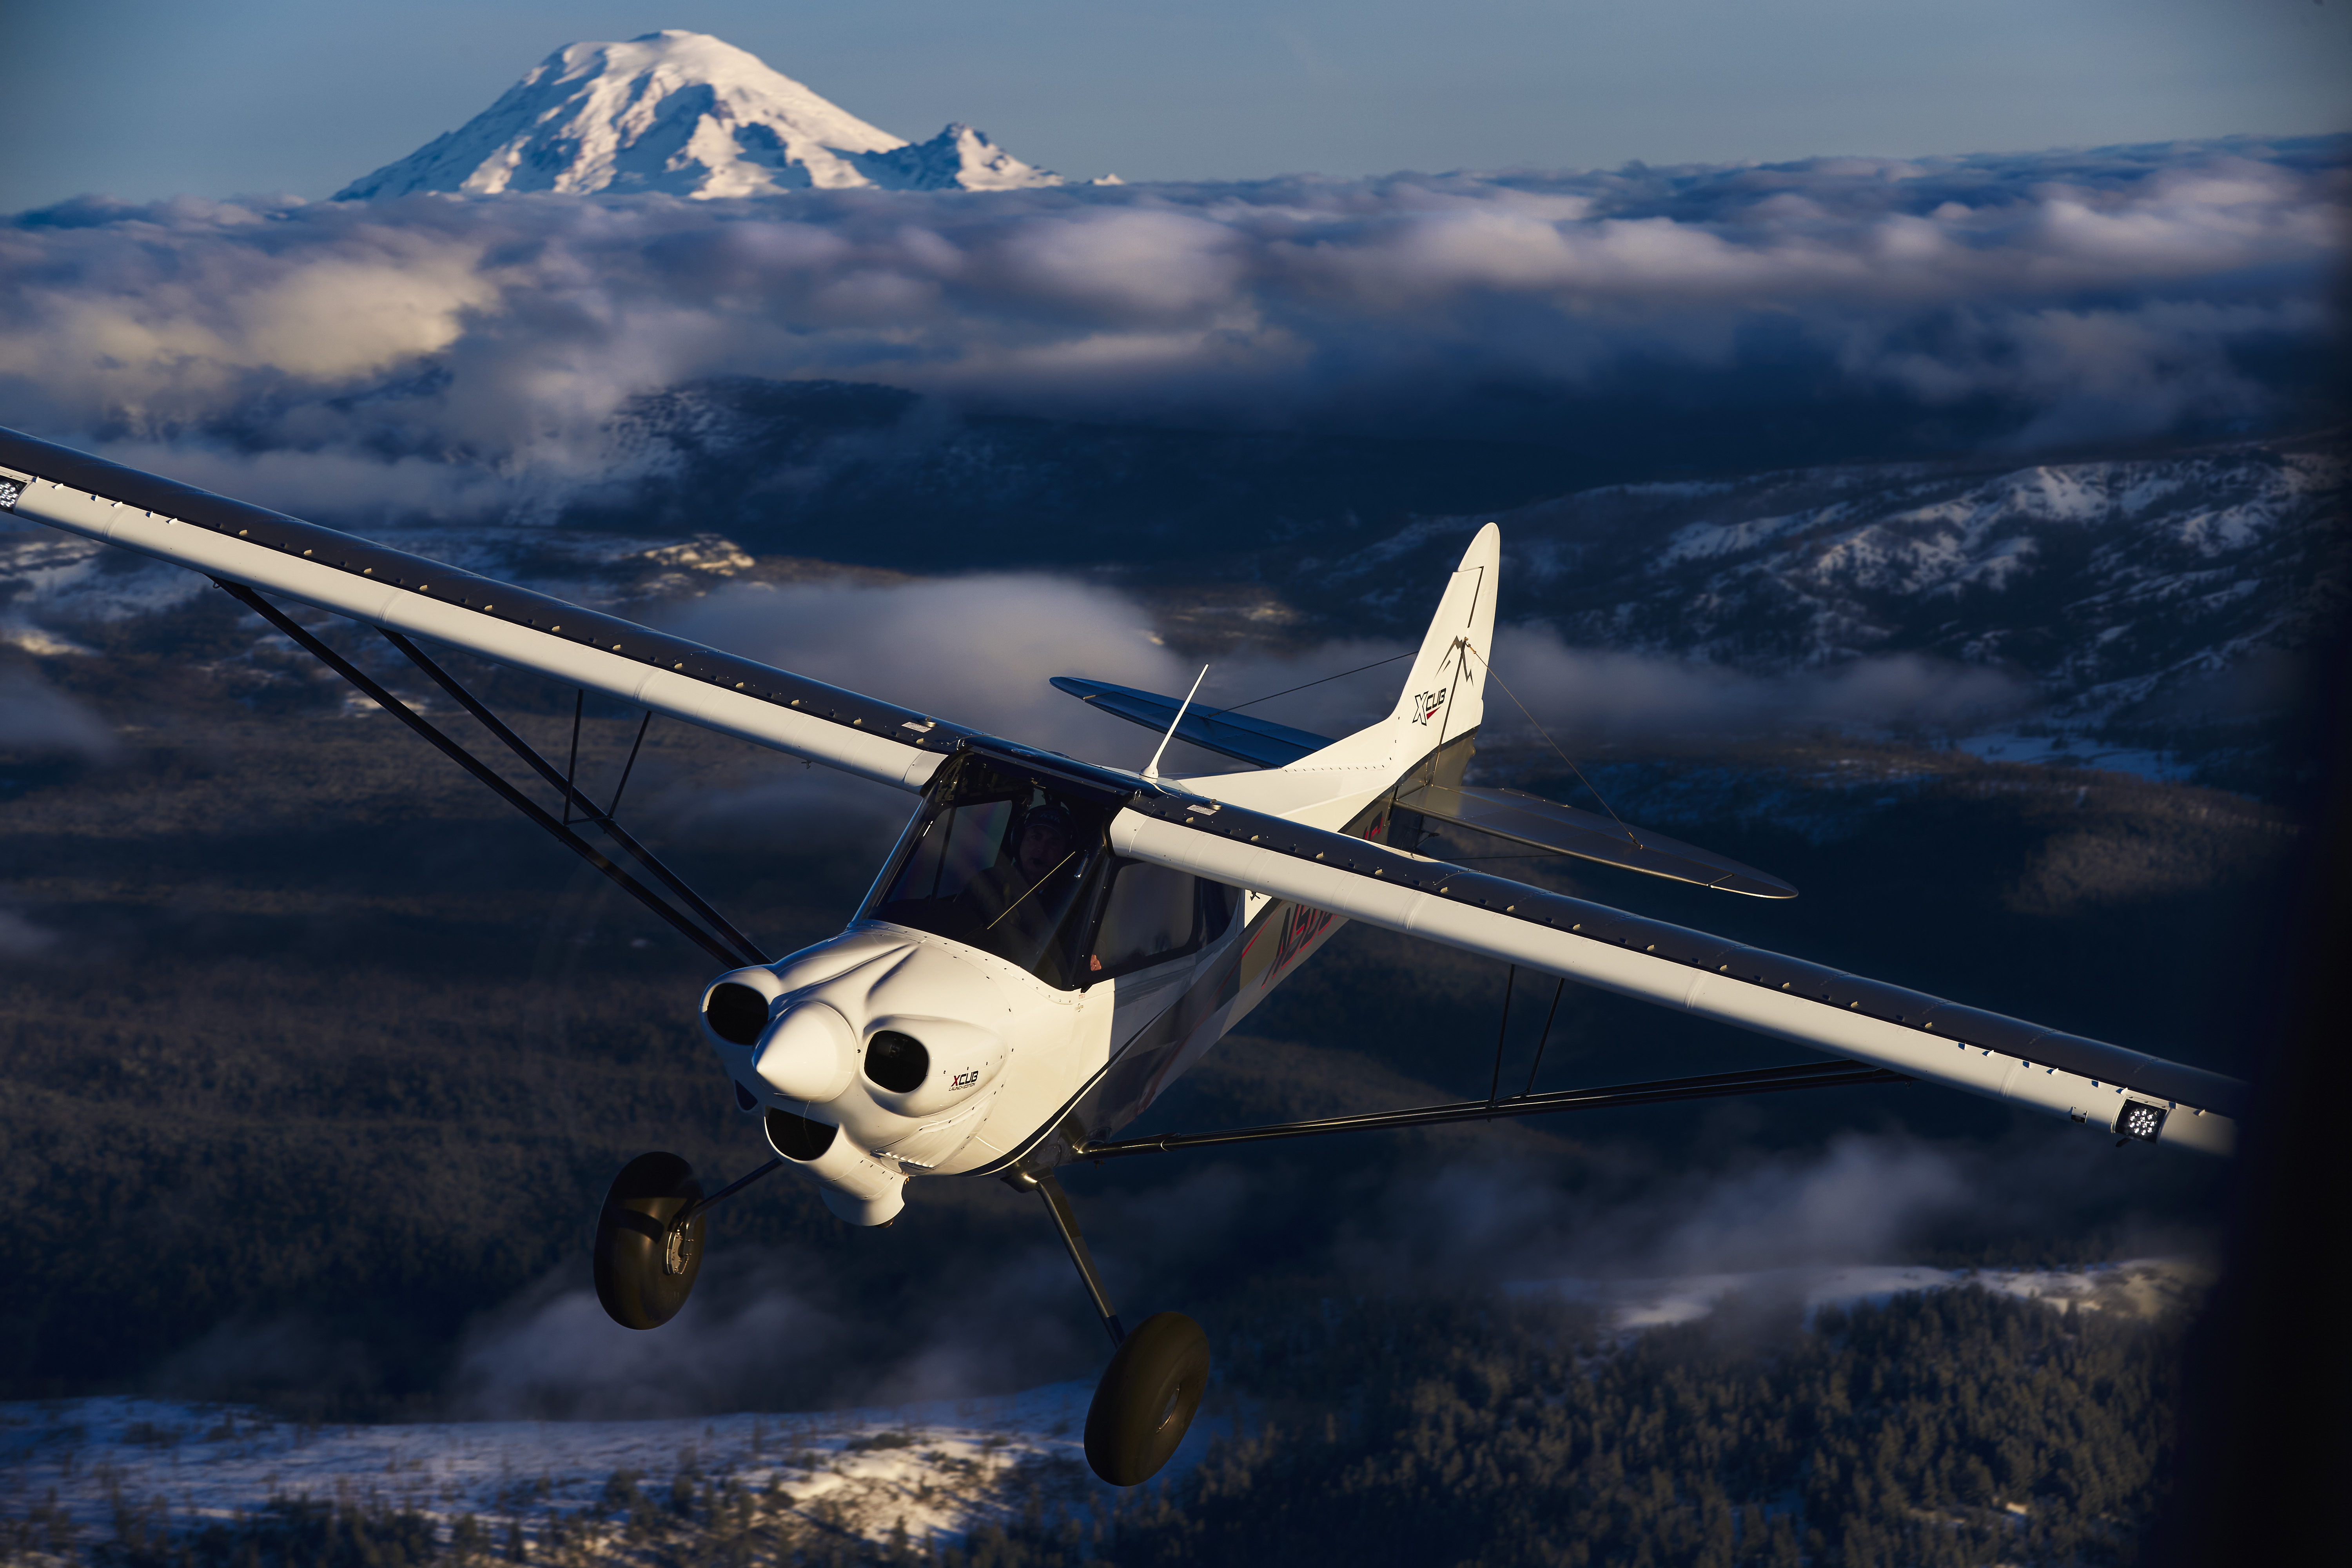 The CubCrafters XCub brings speed and range to the backcountry.